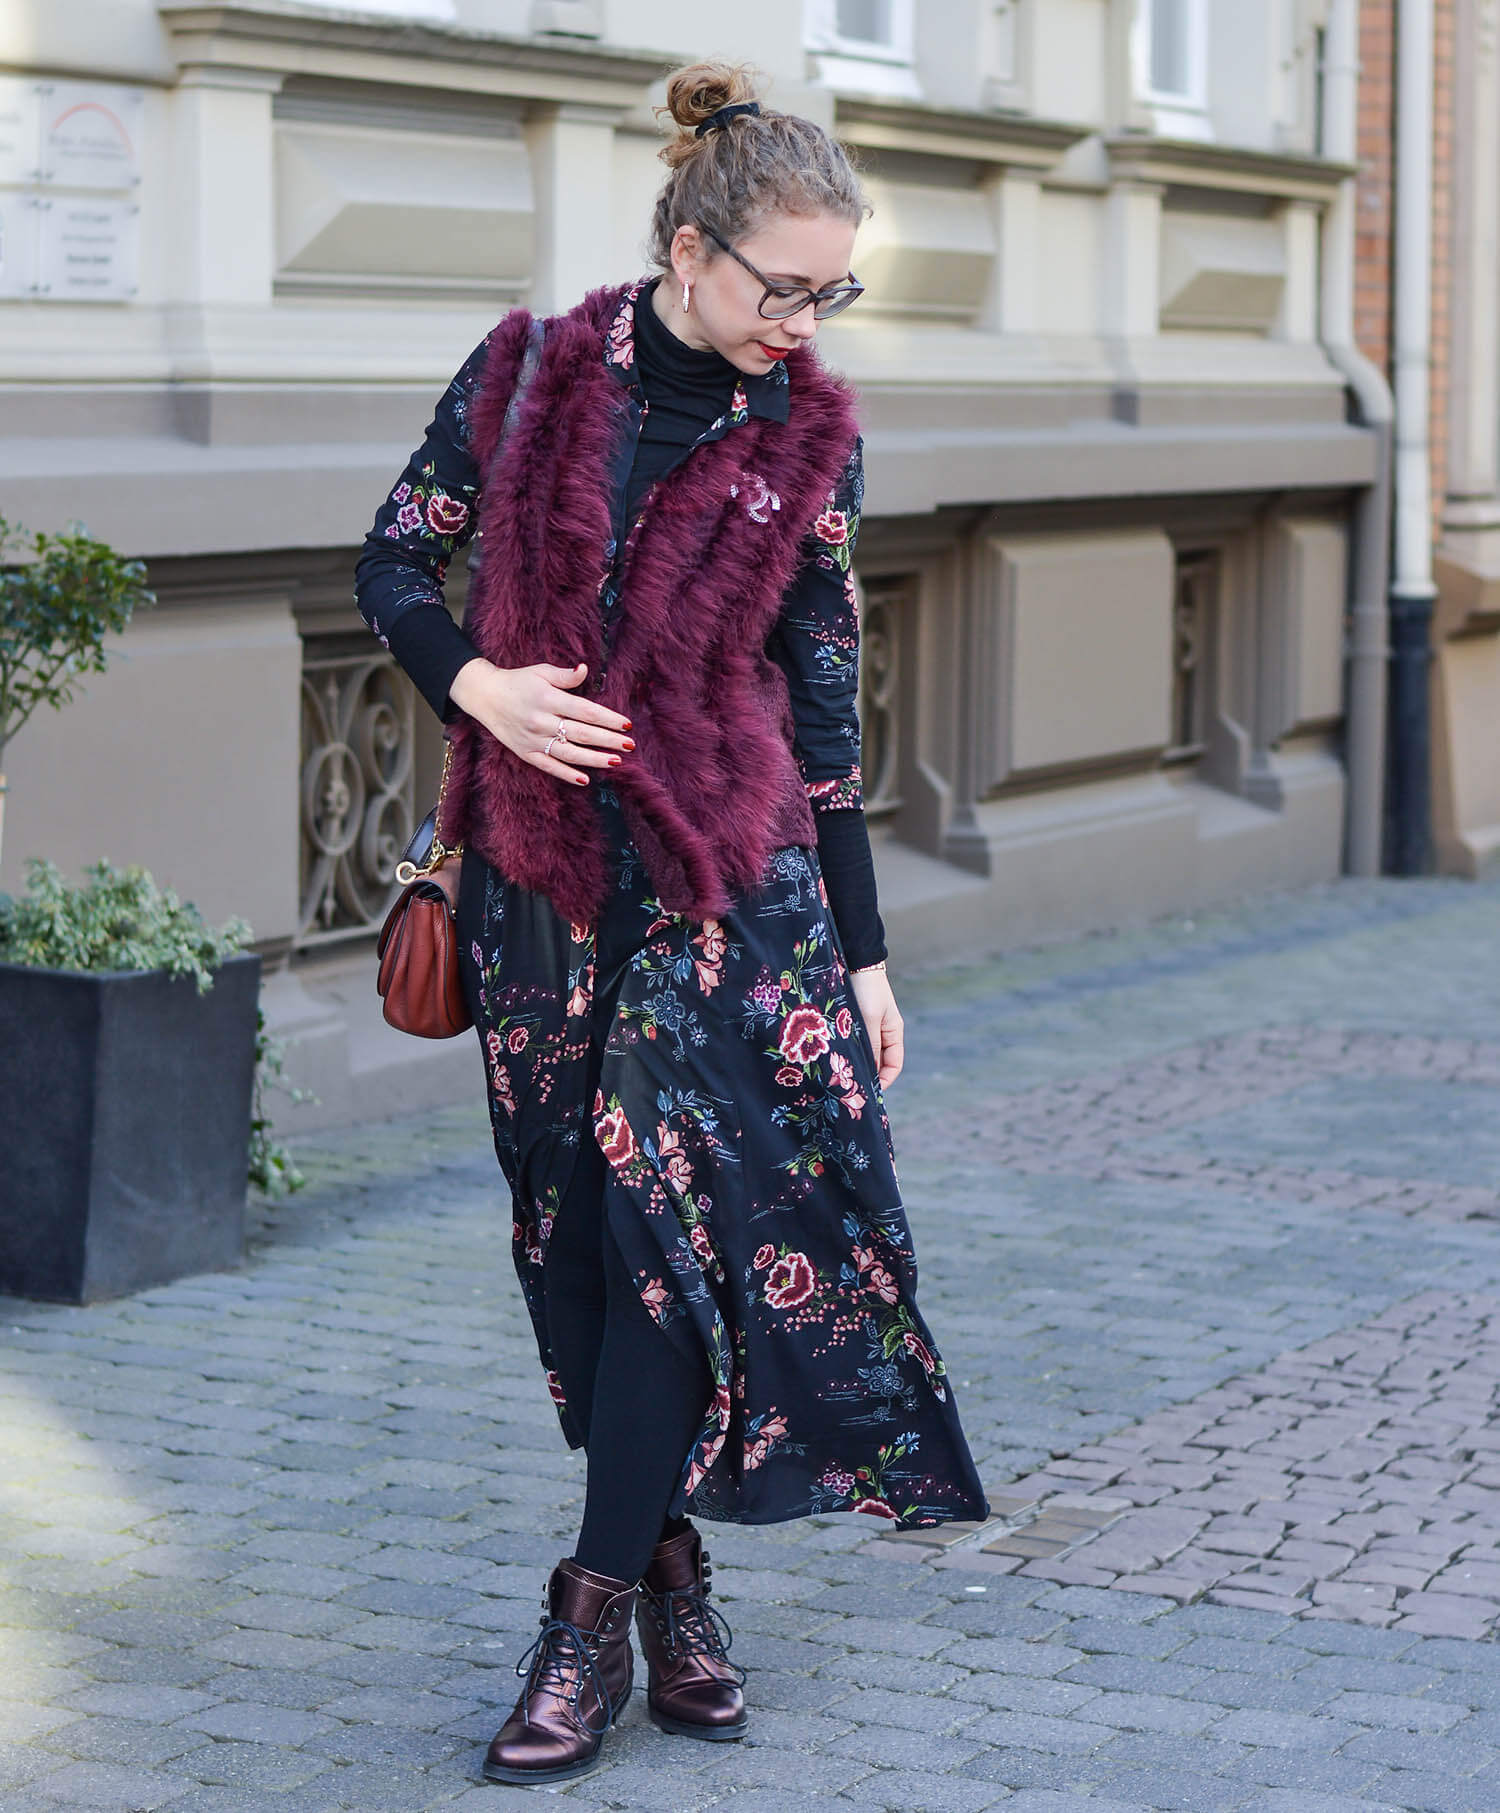 Outfit-Zara-Flower-Dress-Feather-Vest-and-metallic-Boots-kationette-fashionblogger-nrw